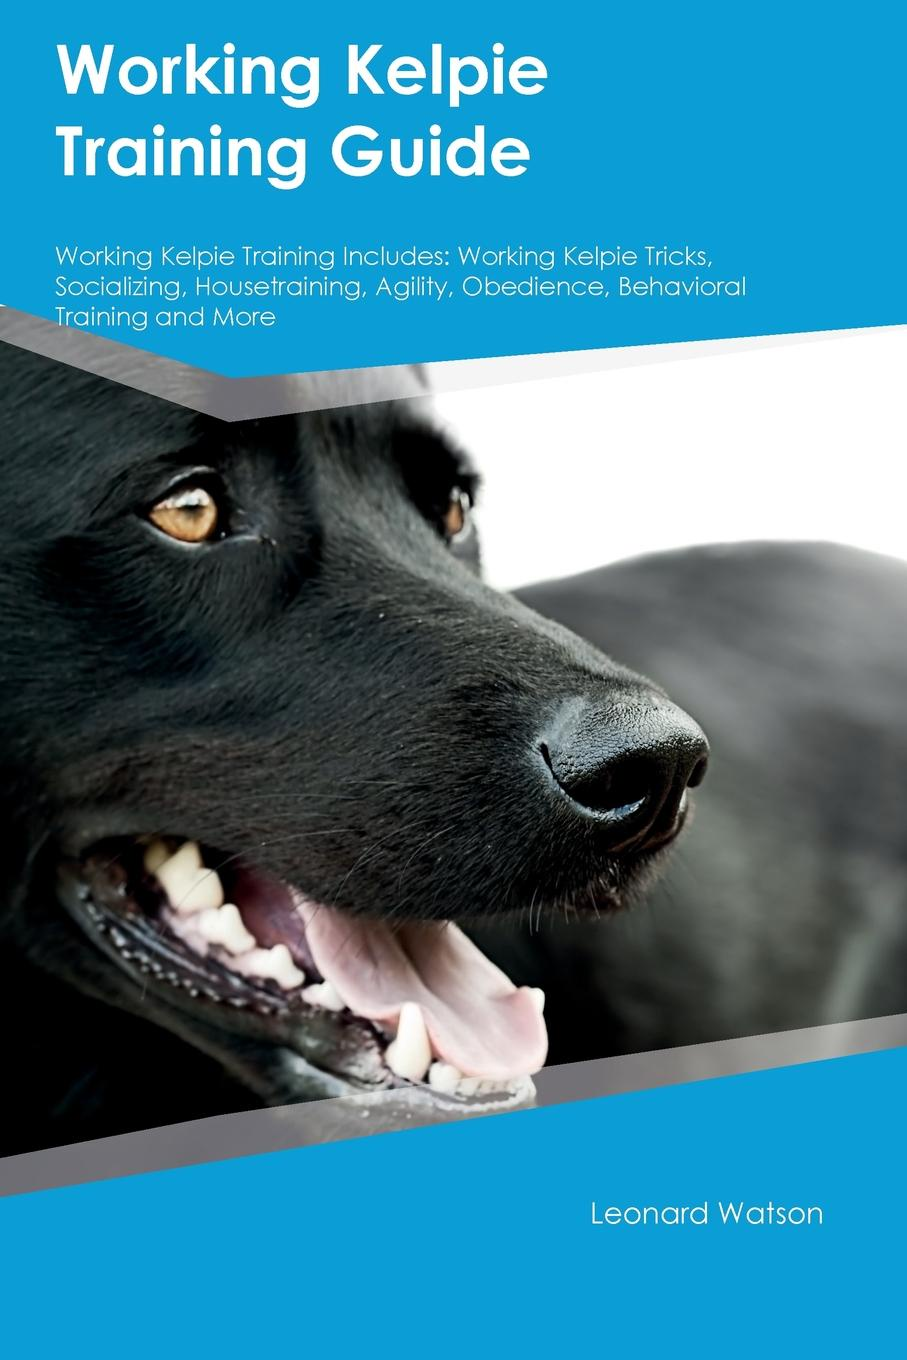 Leonard Watson Working Kelpie Training Guide Working Kelpie Training Includes. Working Kelpie Tricks, Socializing, Housetraining, Agility, Obedience, Behavioral Training and More fsp151 4f01 pk101v3740i good working tested